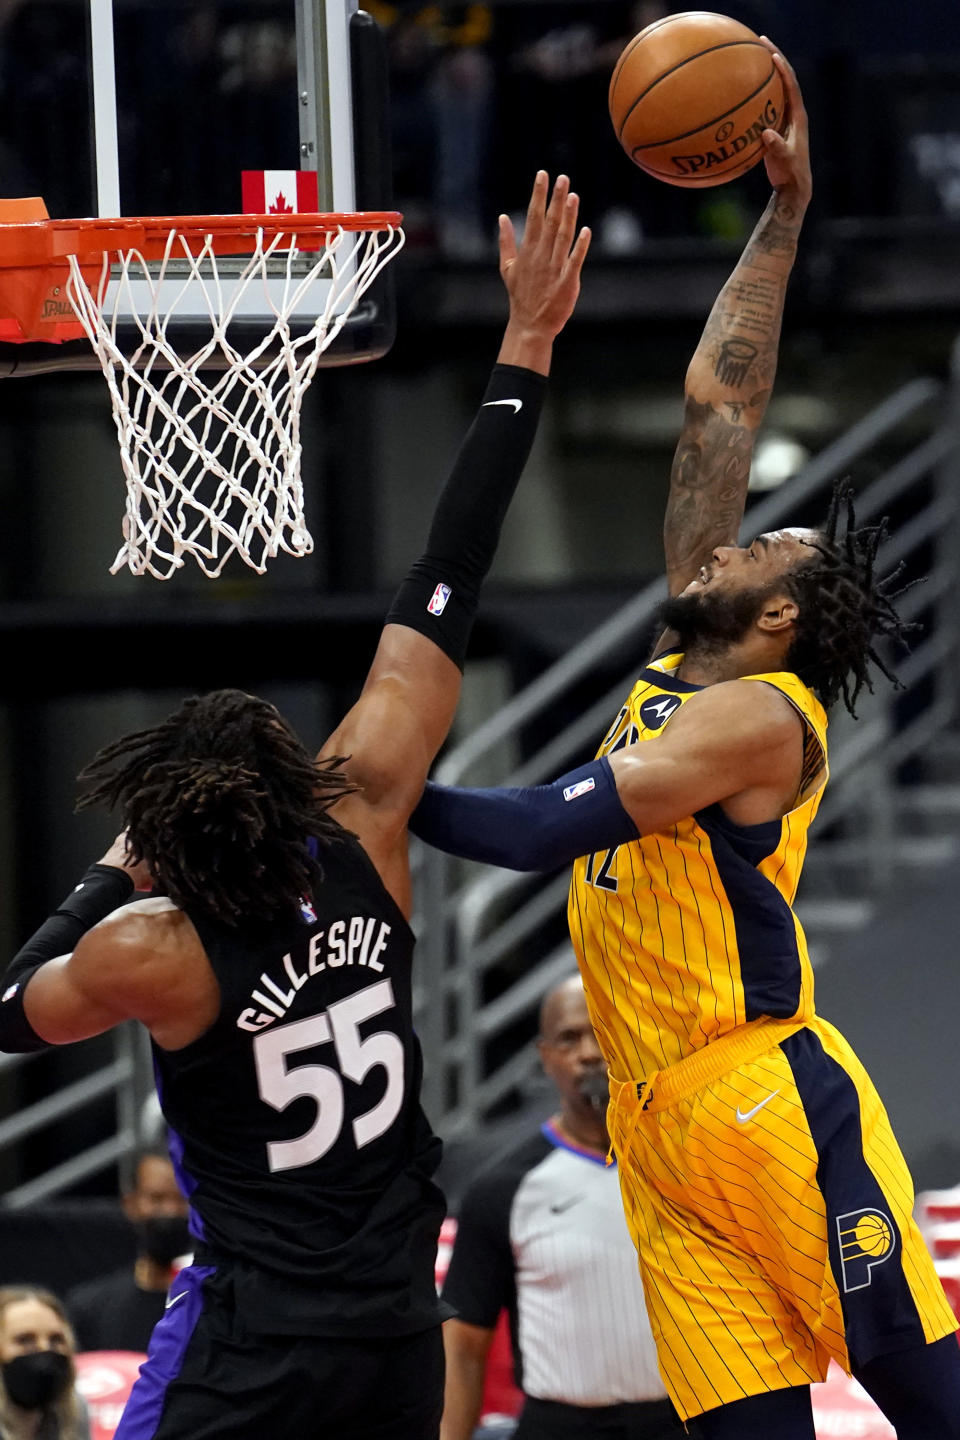 Indiana Pacers forward Oshae Brissett (12) goes up for a slam dunk in front of Toronto Raptors forward Freddie Gillespie (55) during the second half of an NBA basketball game Sunday, May 16, 2021, in Tampa, Fla. (AP Photo/Chris O'Meara)